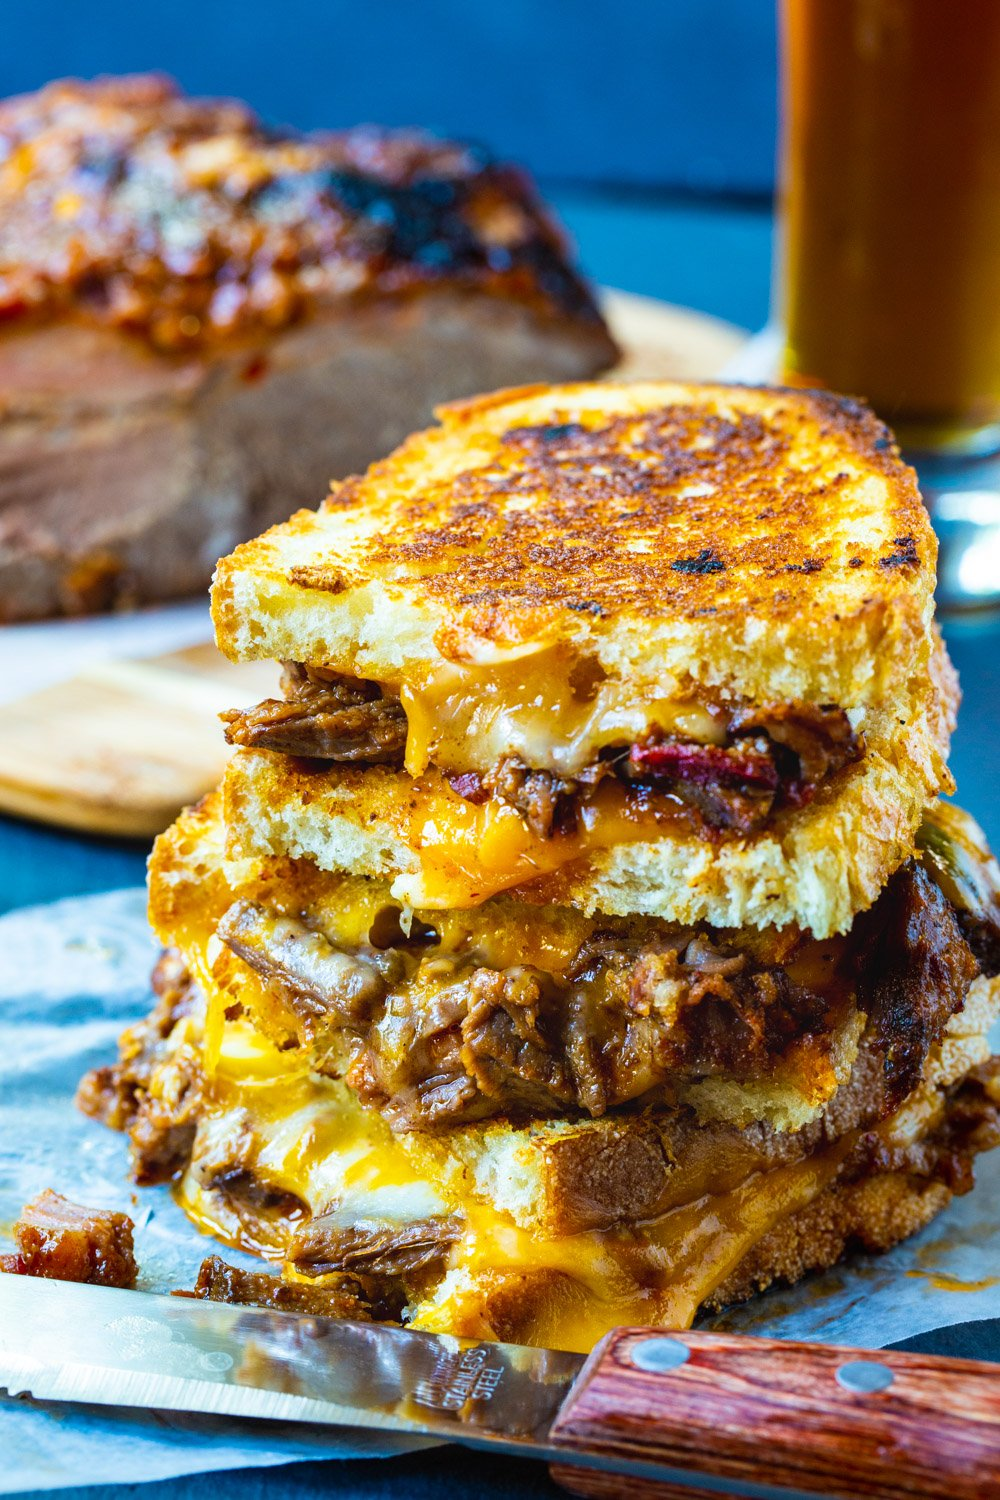 Brisket Grilled Cheese stacked on top of each other.